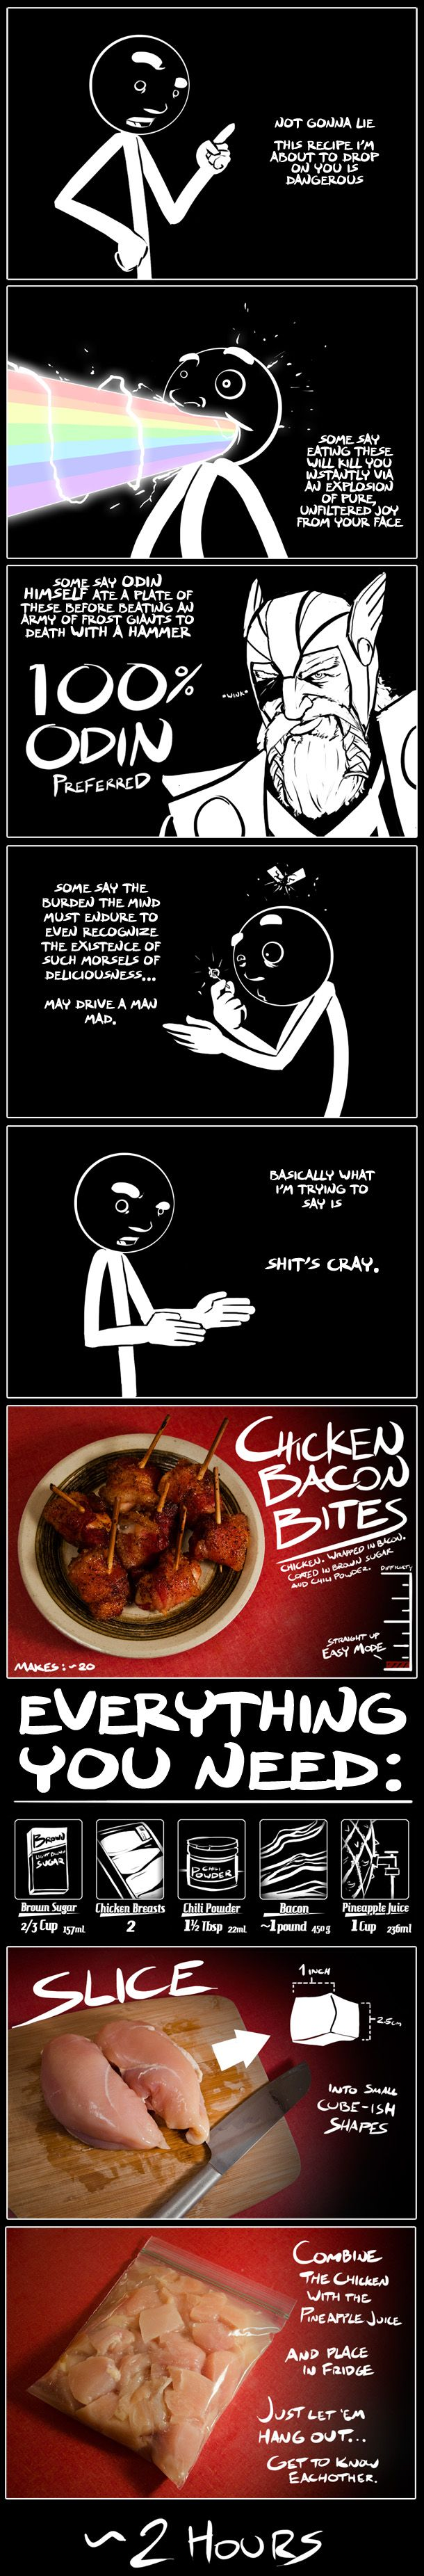 Cooking Comically: CHICKEN BACON BITES